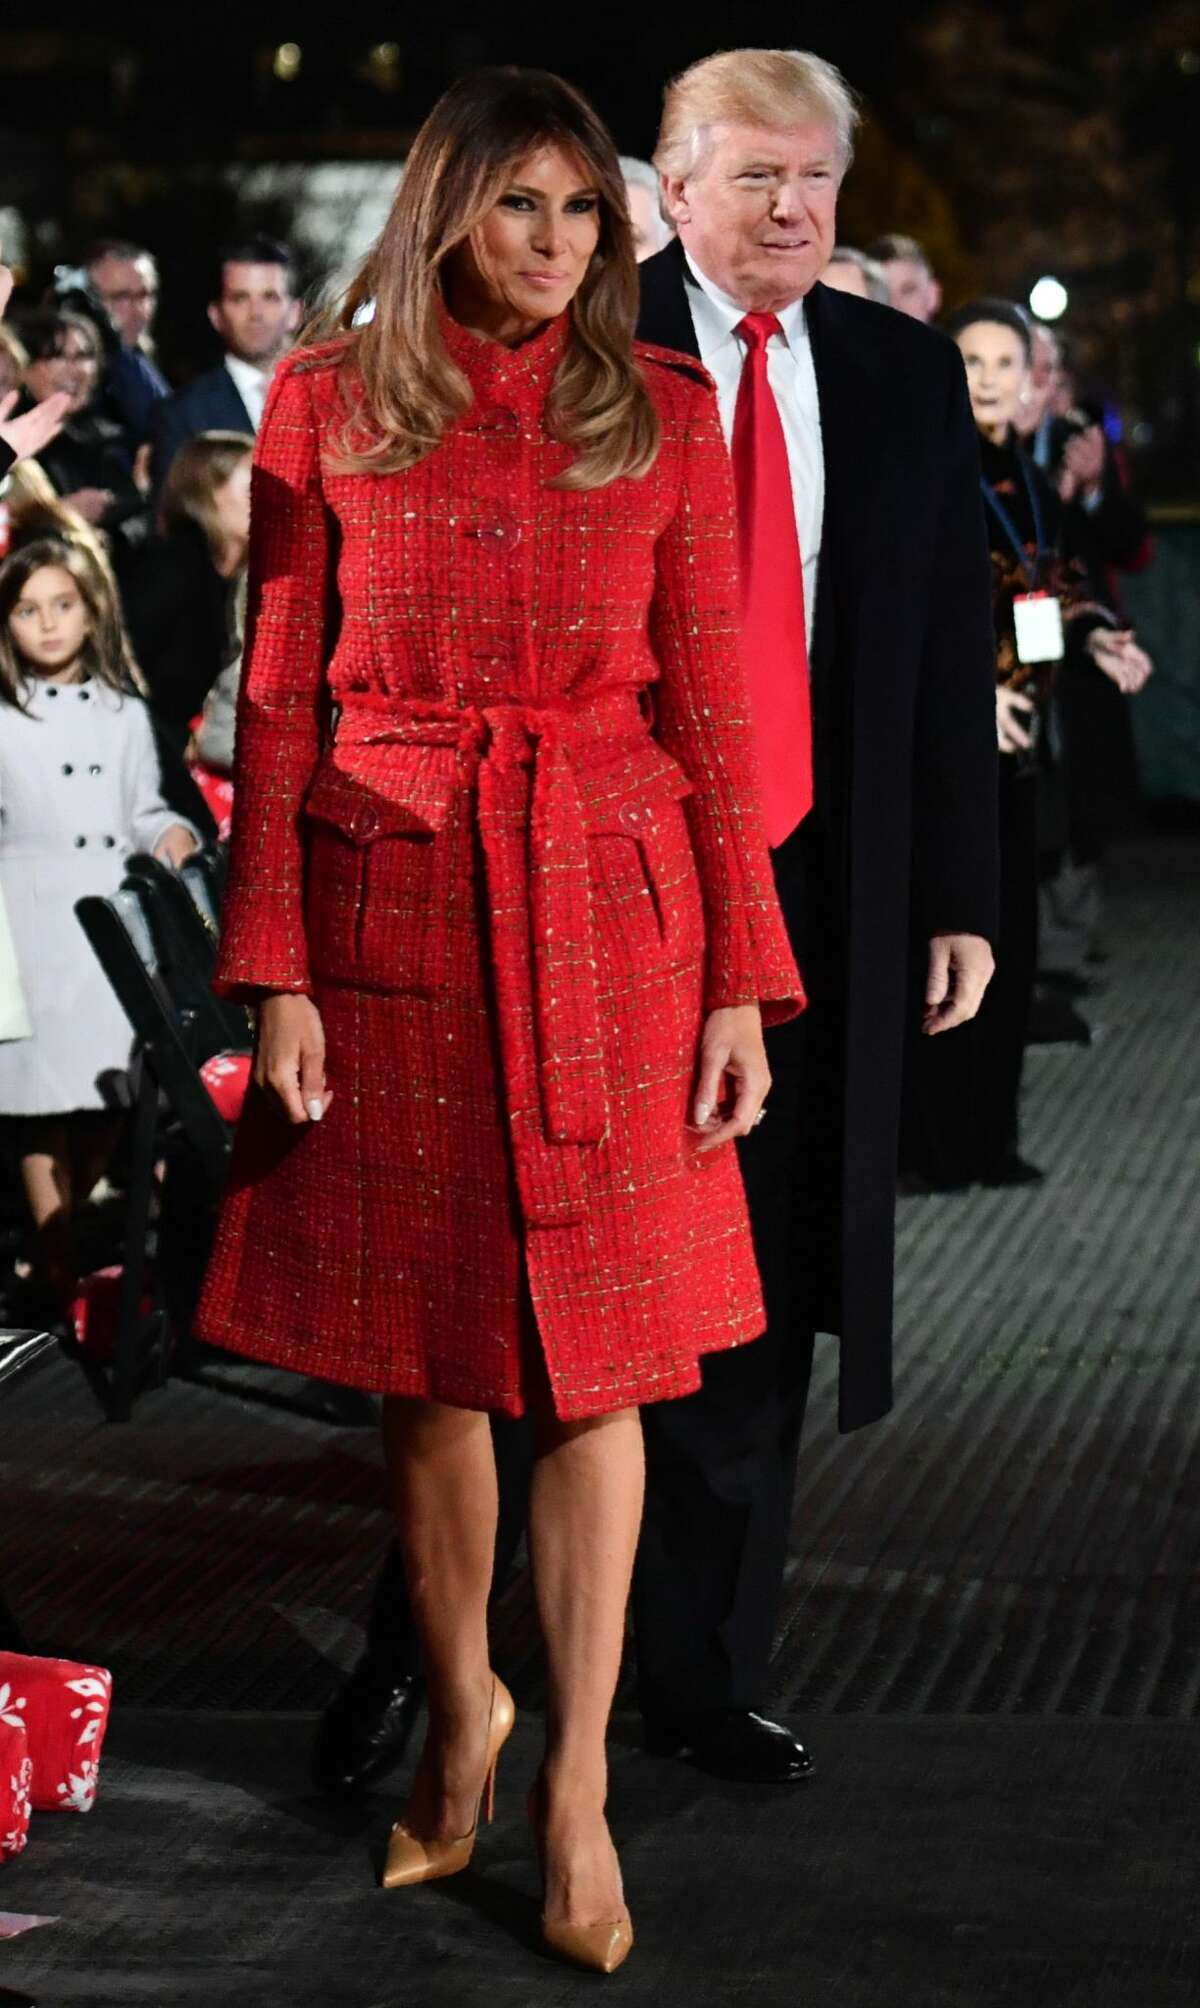 US President Donald Trump and First Lady Melania Trump walk to the stage during the 95th annual National Christmas Tree Lighting ceremony at the Ellipse in President's Park near the White House in Washington, D.C on November 30, 2017.